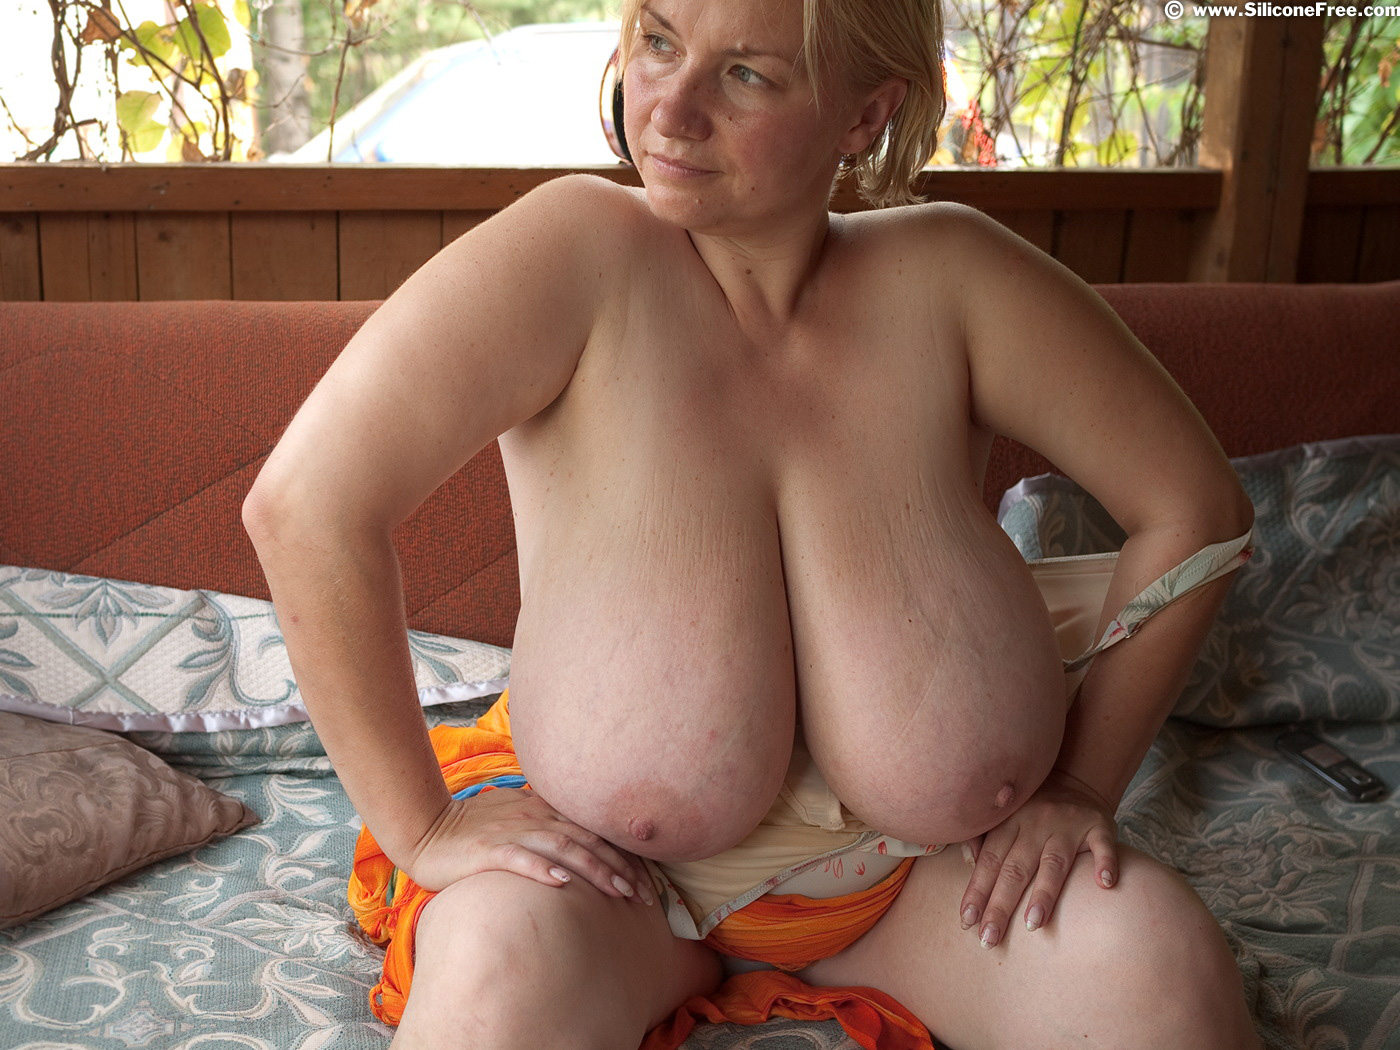 Are not silicone free bbw nude consider